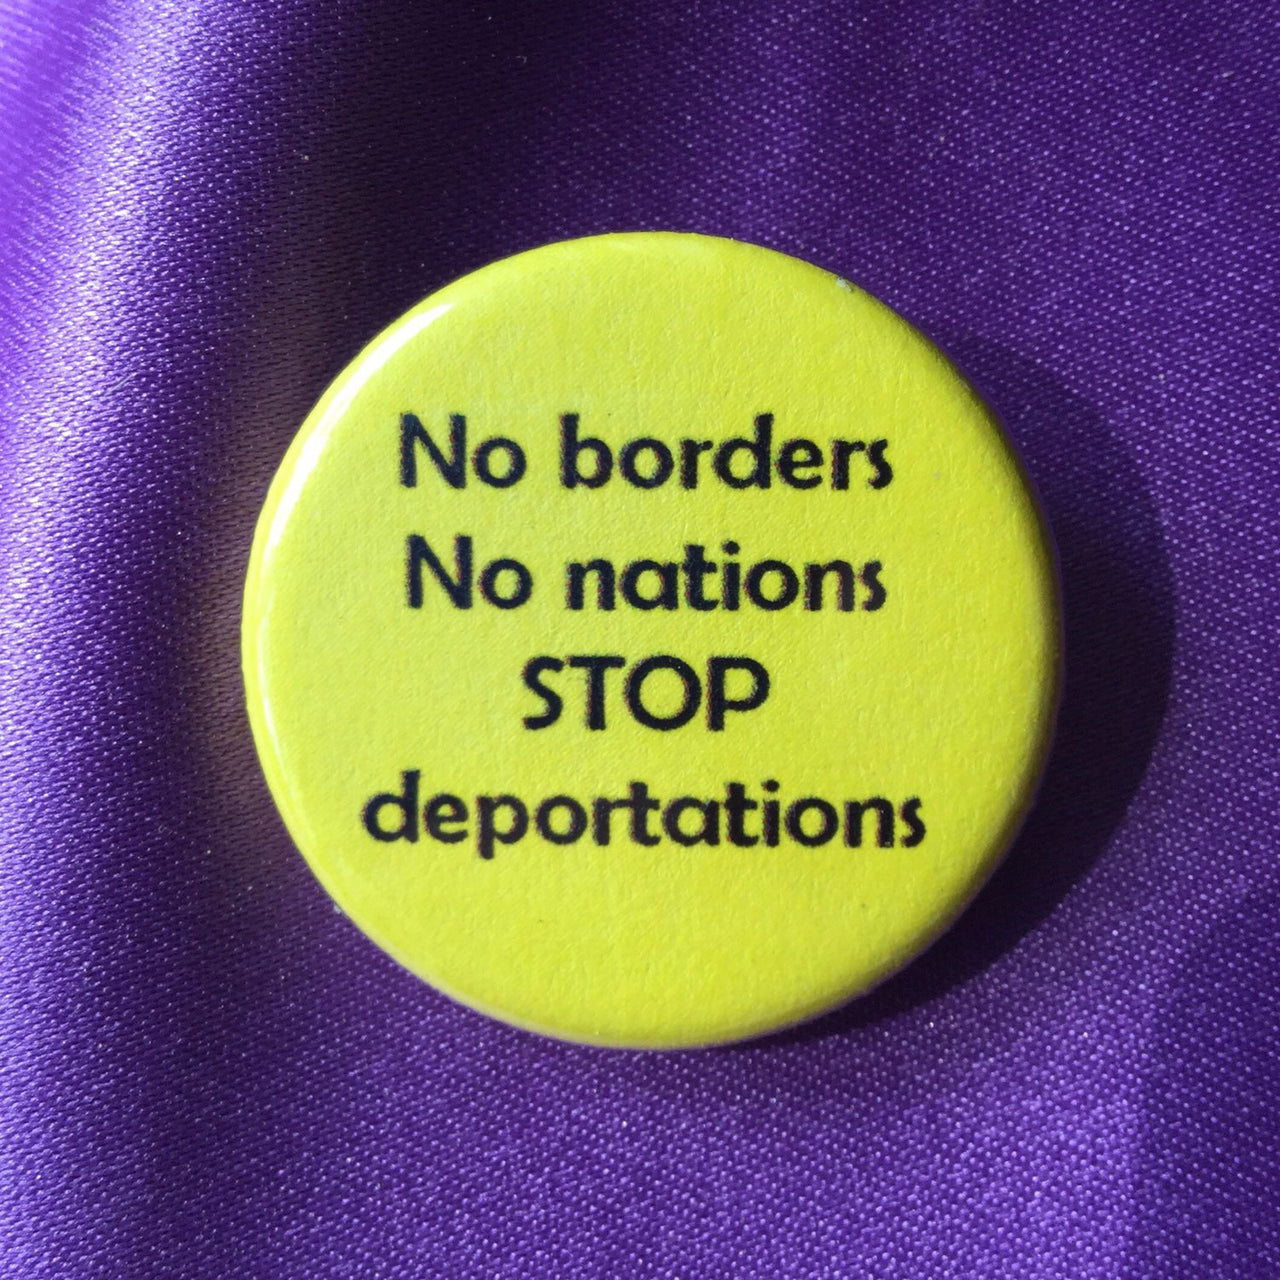 No borders no nations stop deportations - Radical Buttons